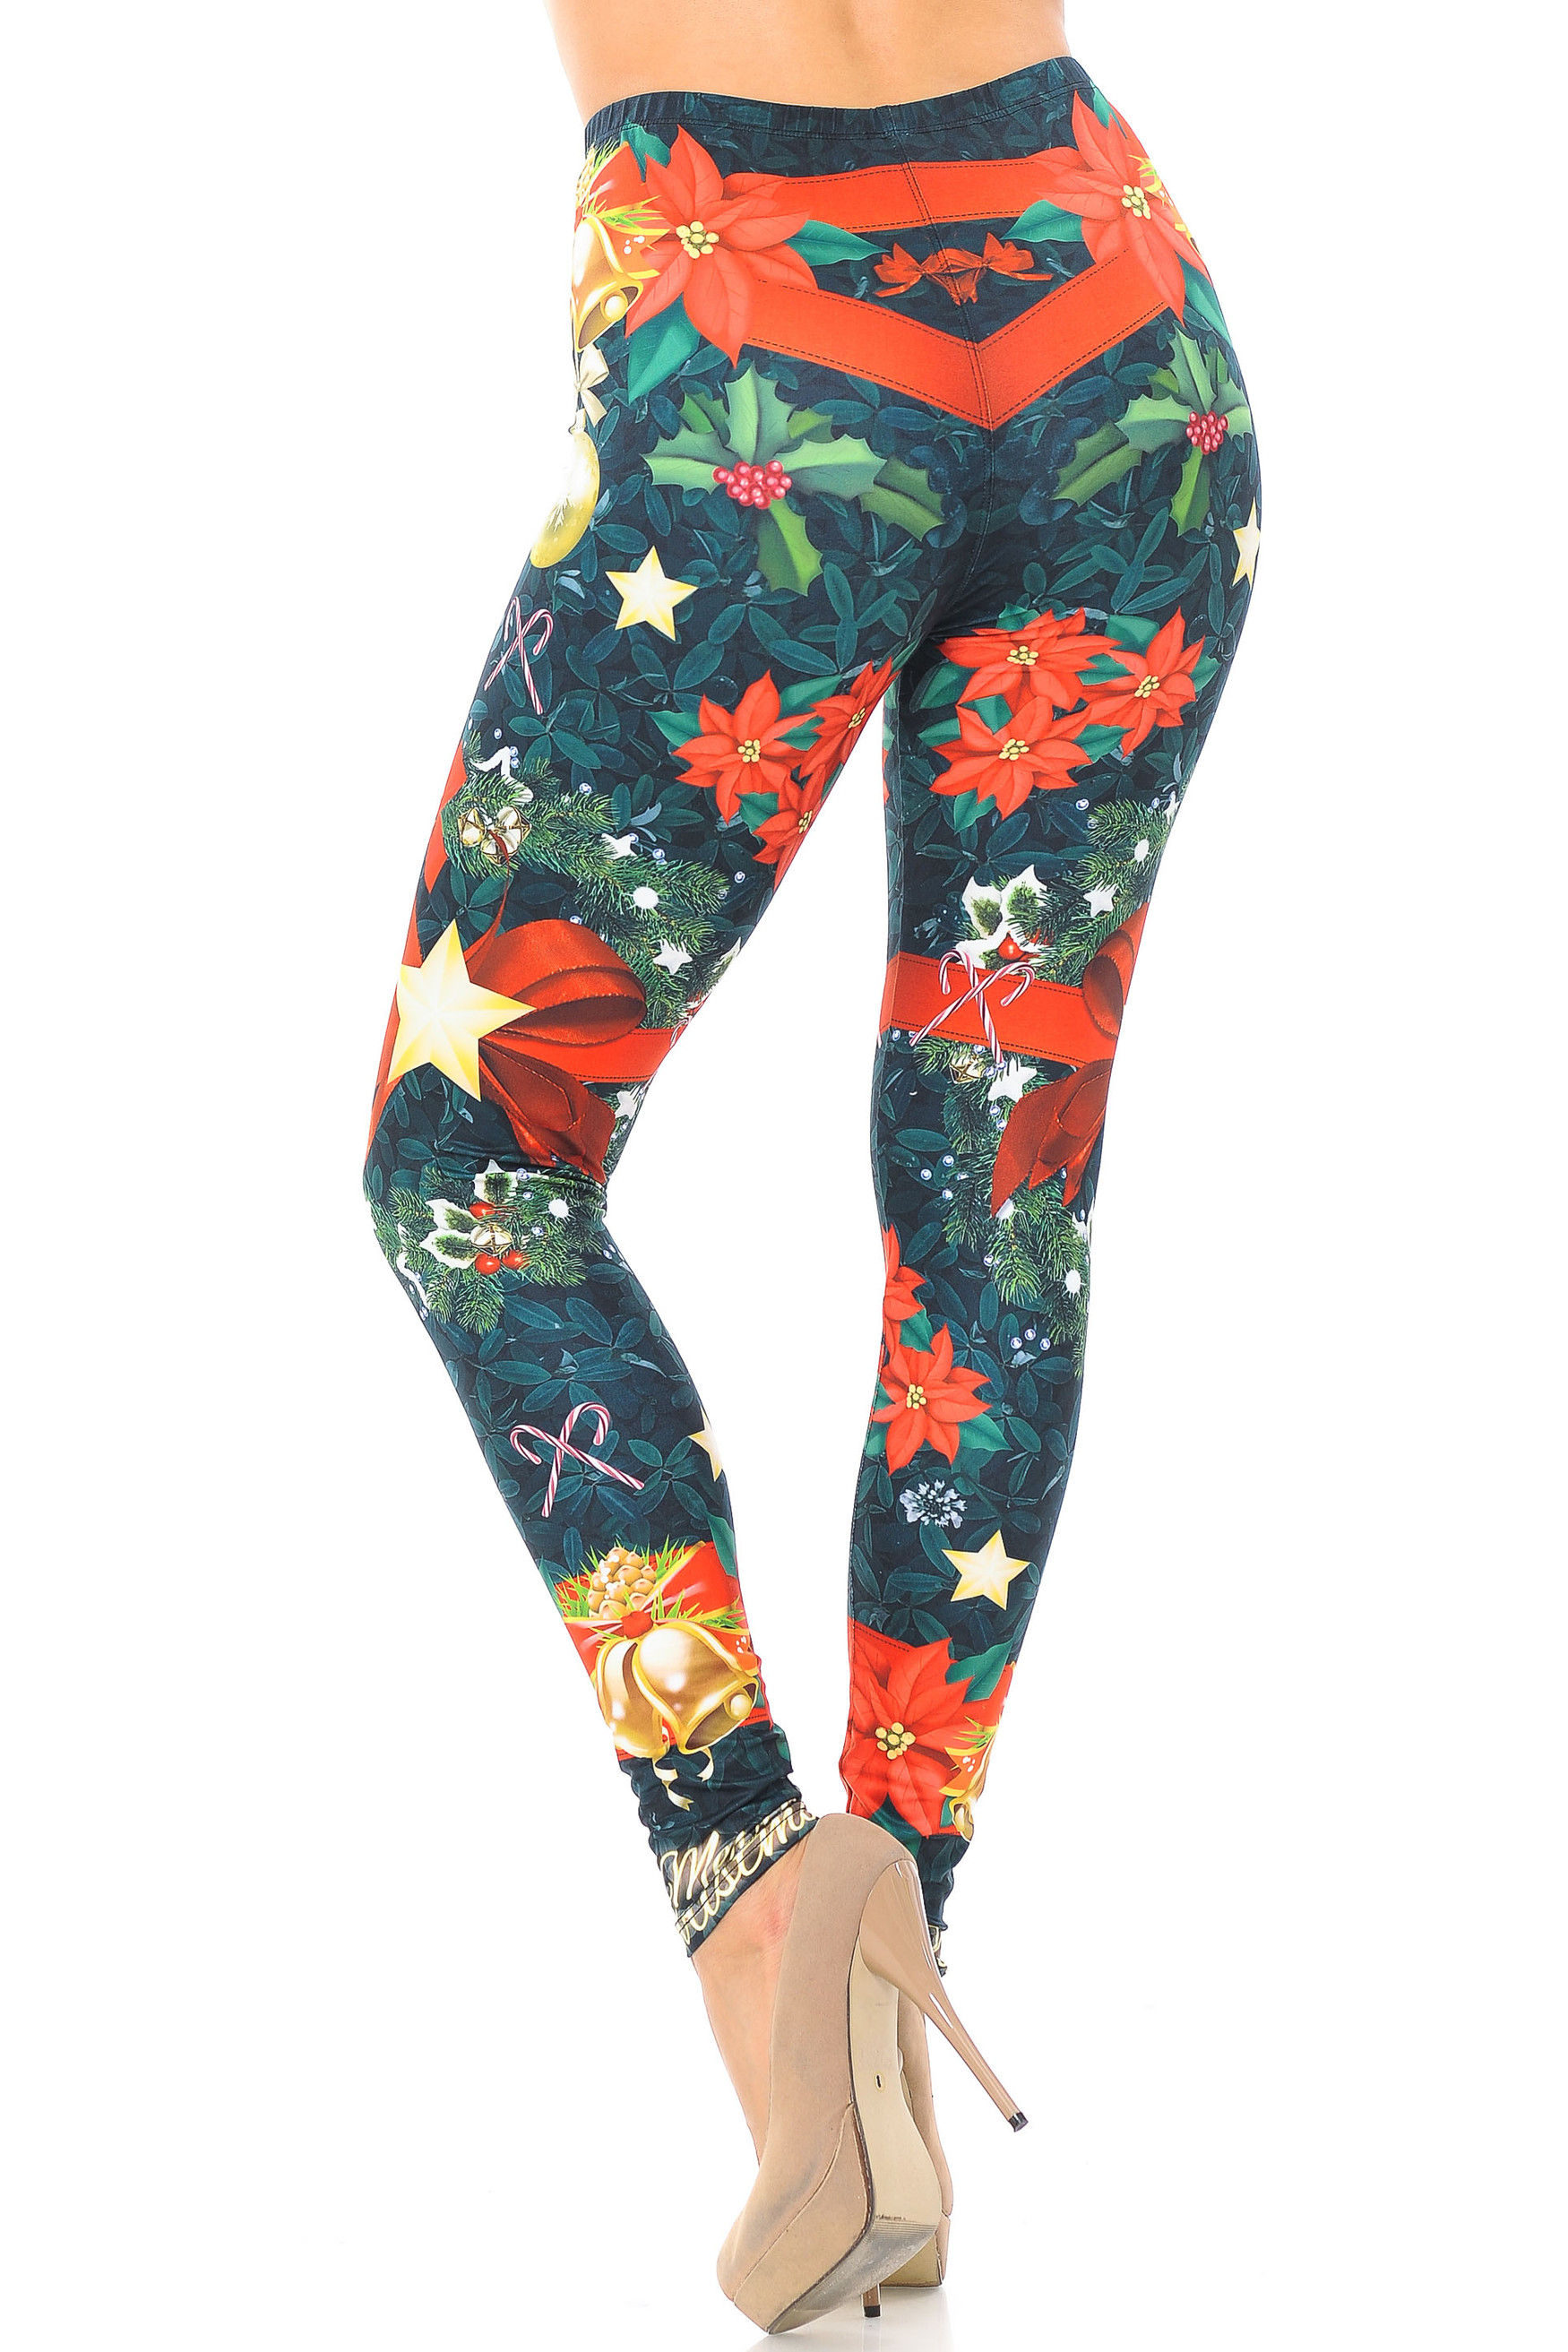 Creamy Soft Christmas Bows and Wreath Leggings - USA Fashion™